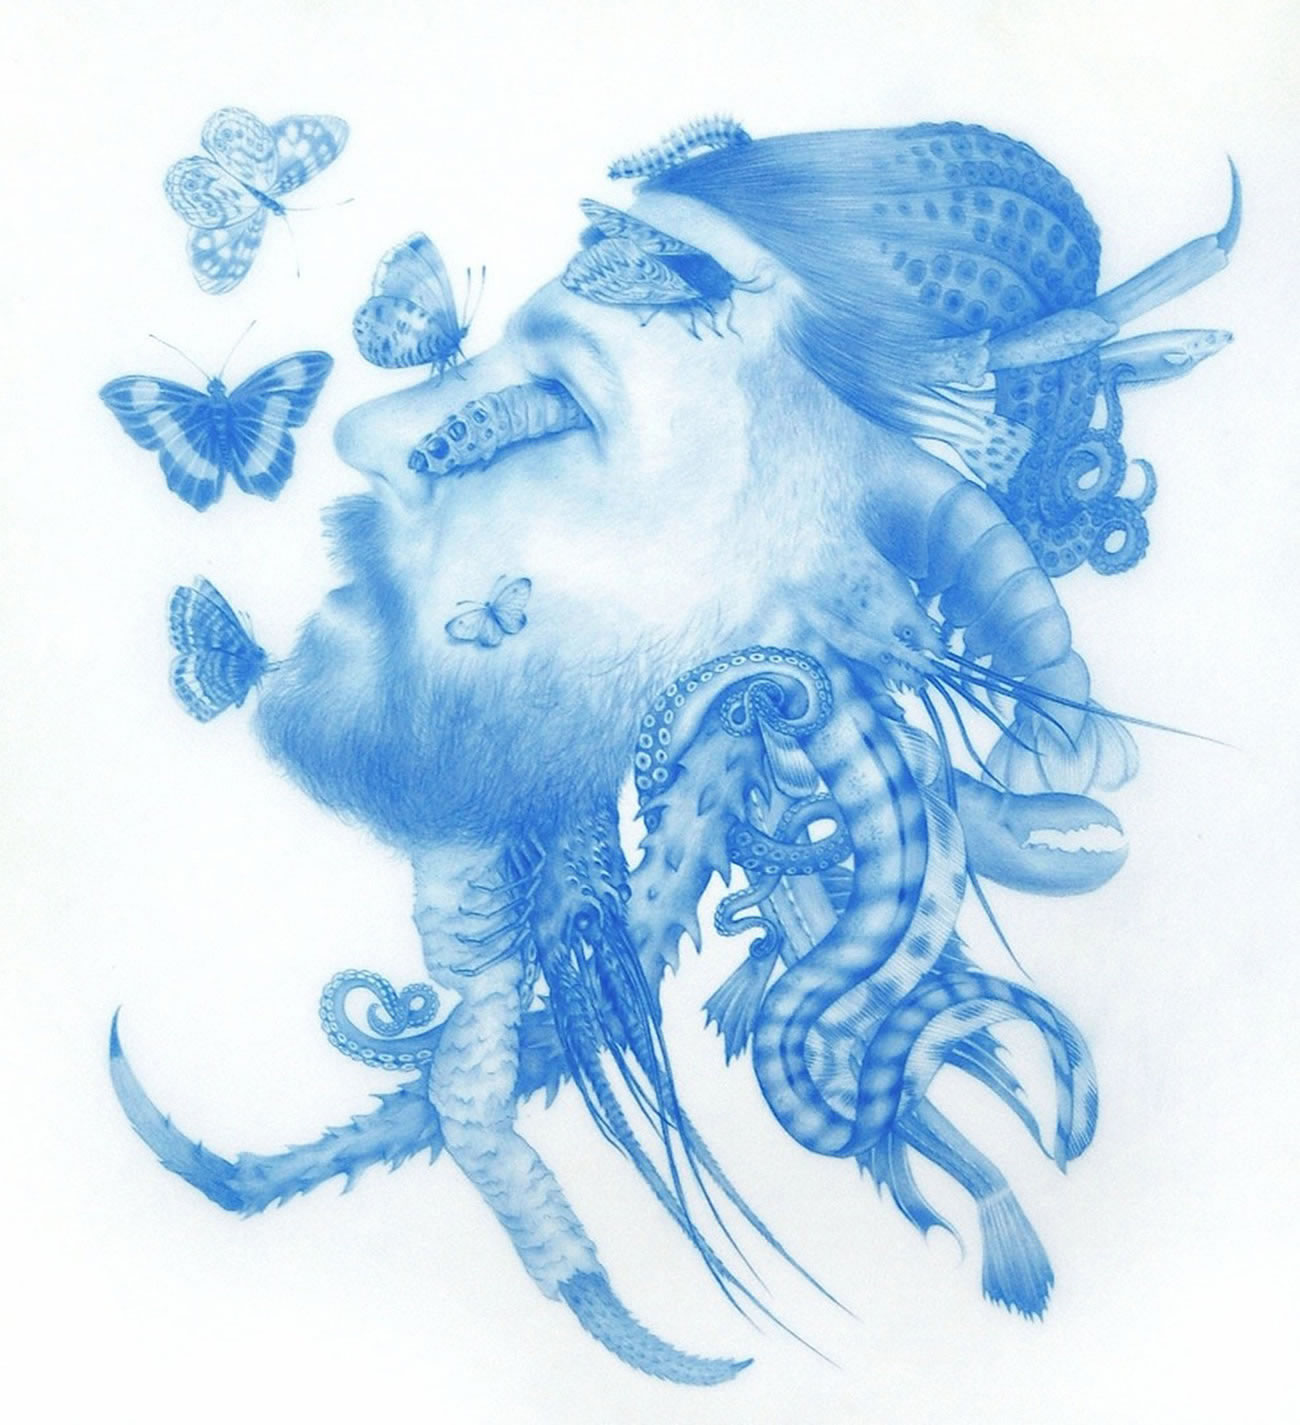 insects on man's face, blue drawing by Zachari Logan